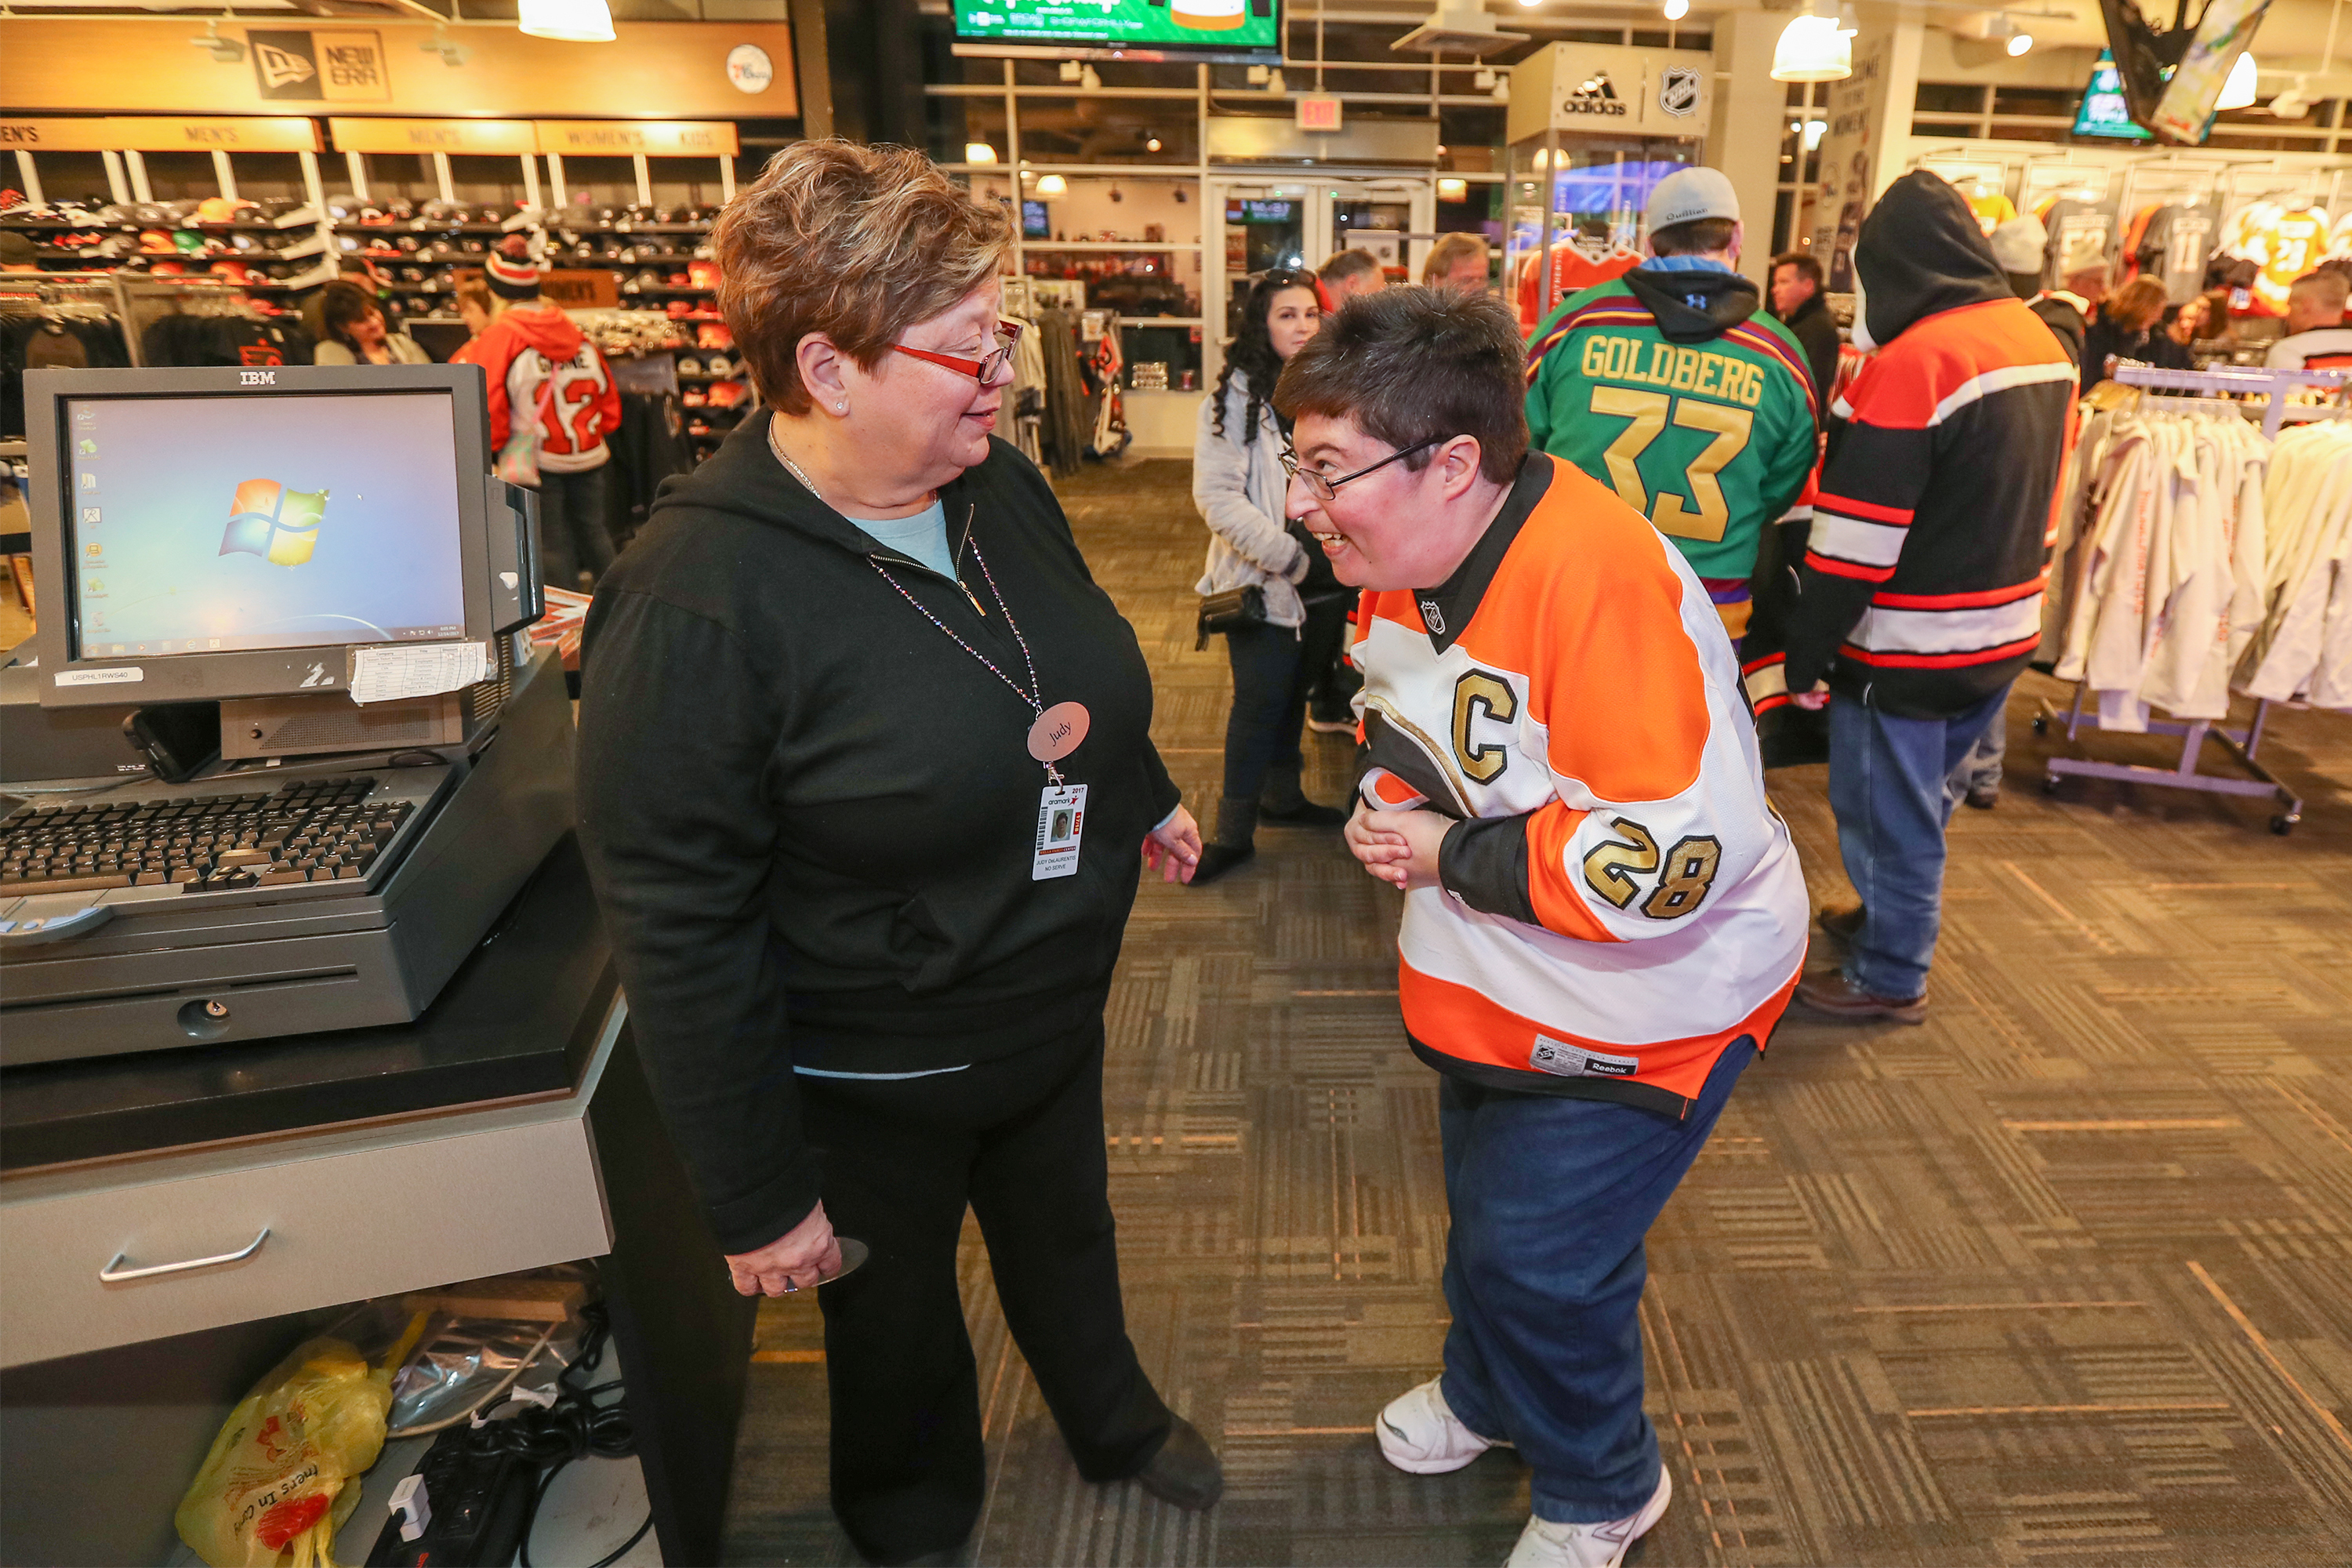 Josh Silverman, right, gets very excited talking about the upcoming game against the Buffalo Sabres while talking to Judy DeLaurentiis, left, who works in the New Era Team Store in the Wells Fargo Center. MICHAEL BRYANT/ Staff Photographer